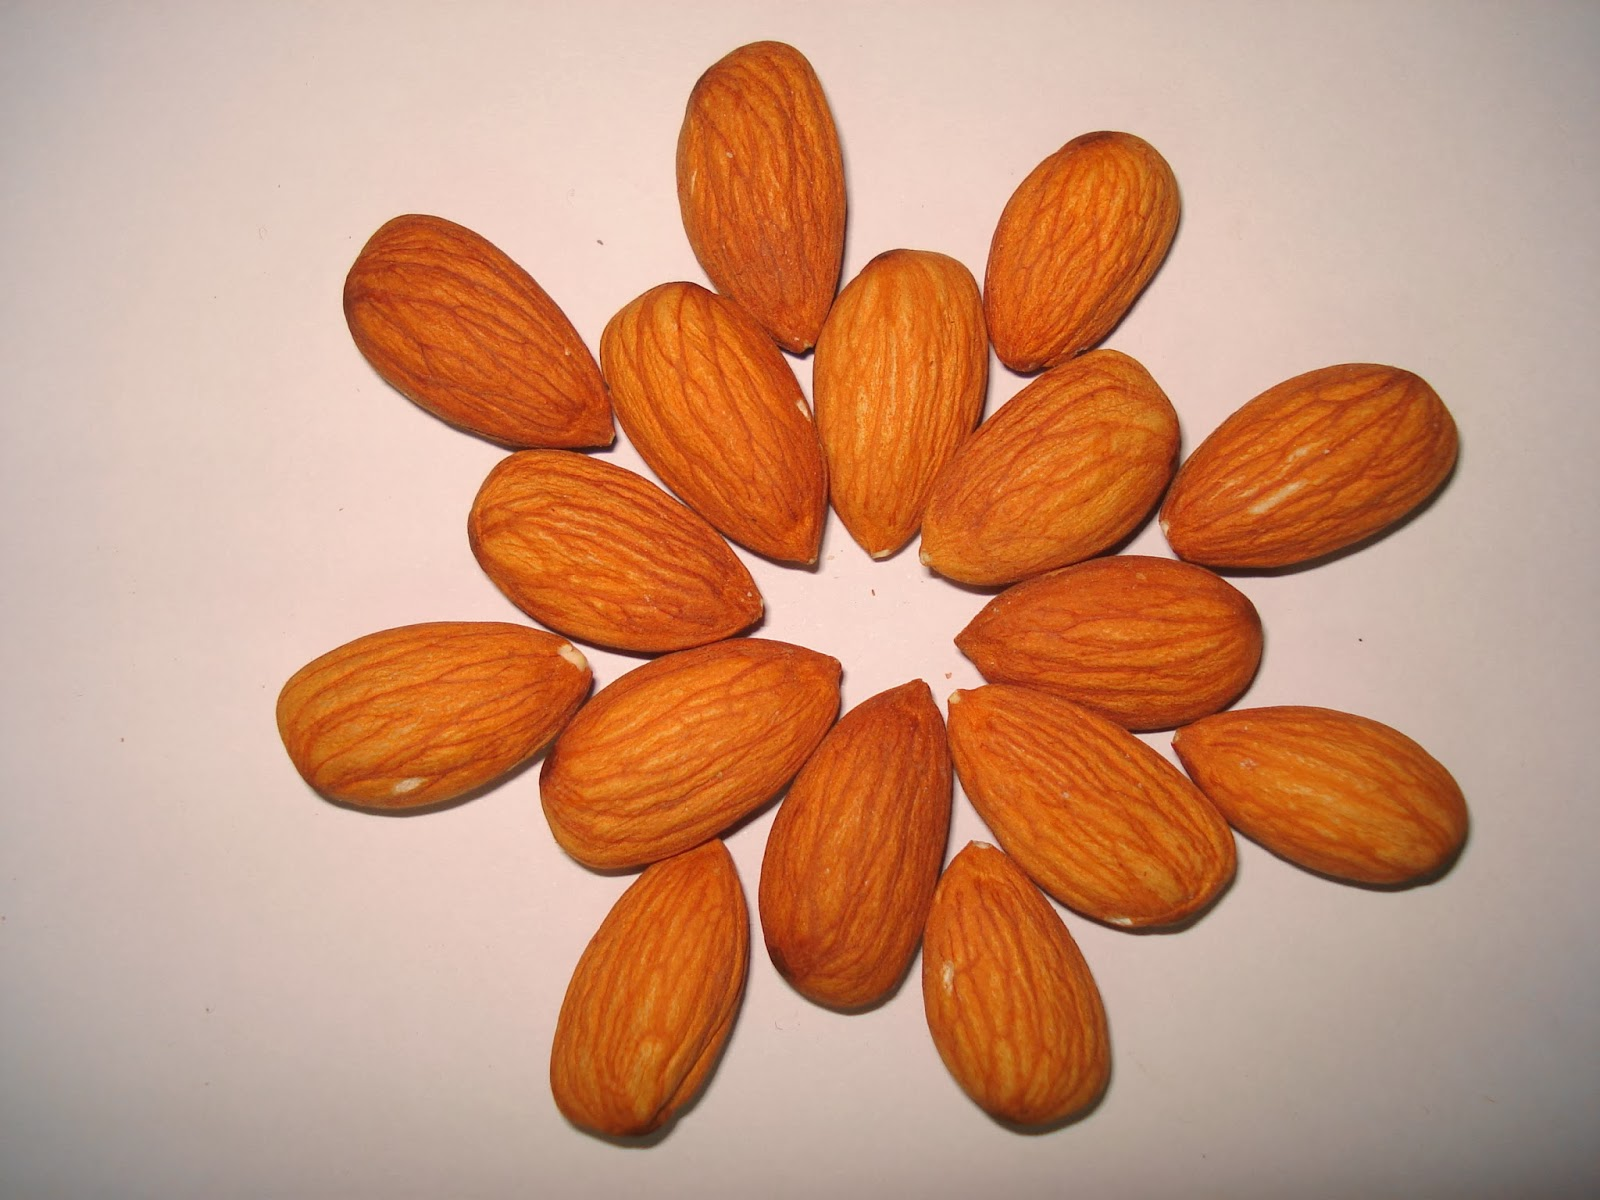 http://healthyinfojust4u.blogspot.com/2014/01/healthy-lifestyle-with-almonds.html